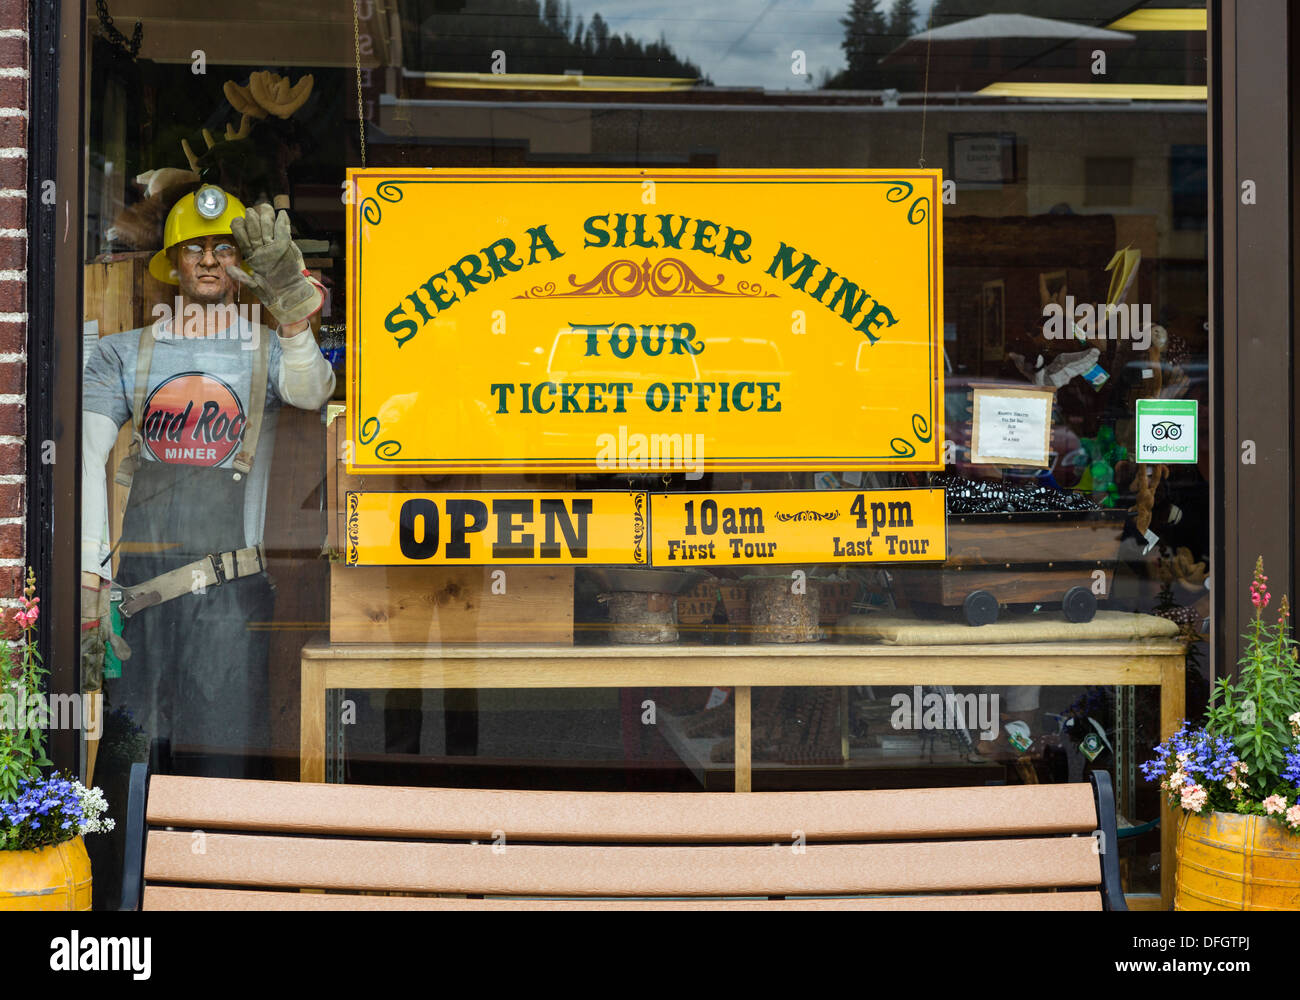 Sierra Silver Mine Tour office, Bank Street (Main Street) in the historic old silver mining town of Wallace, Idaho, USA - Stock Image